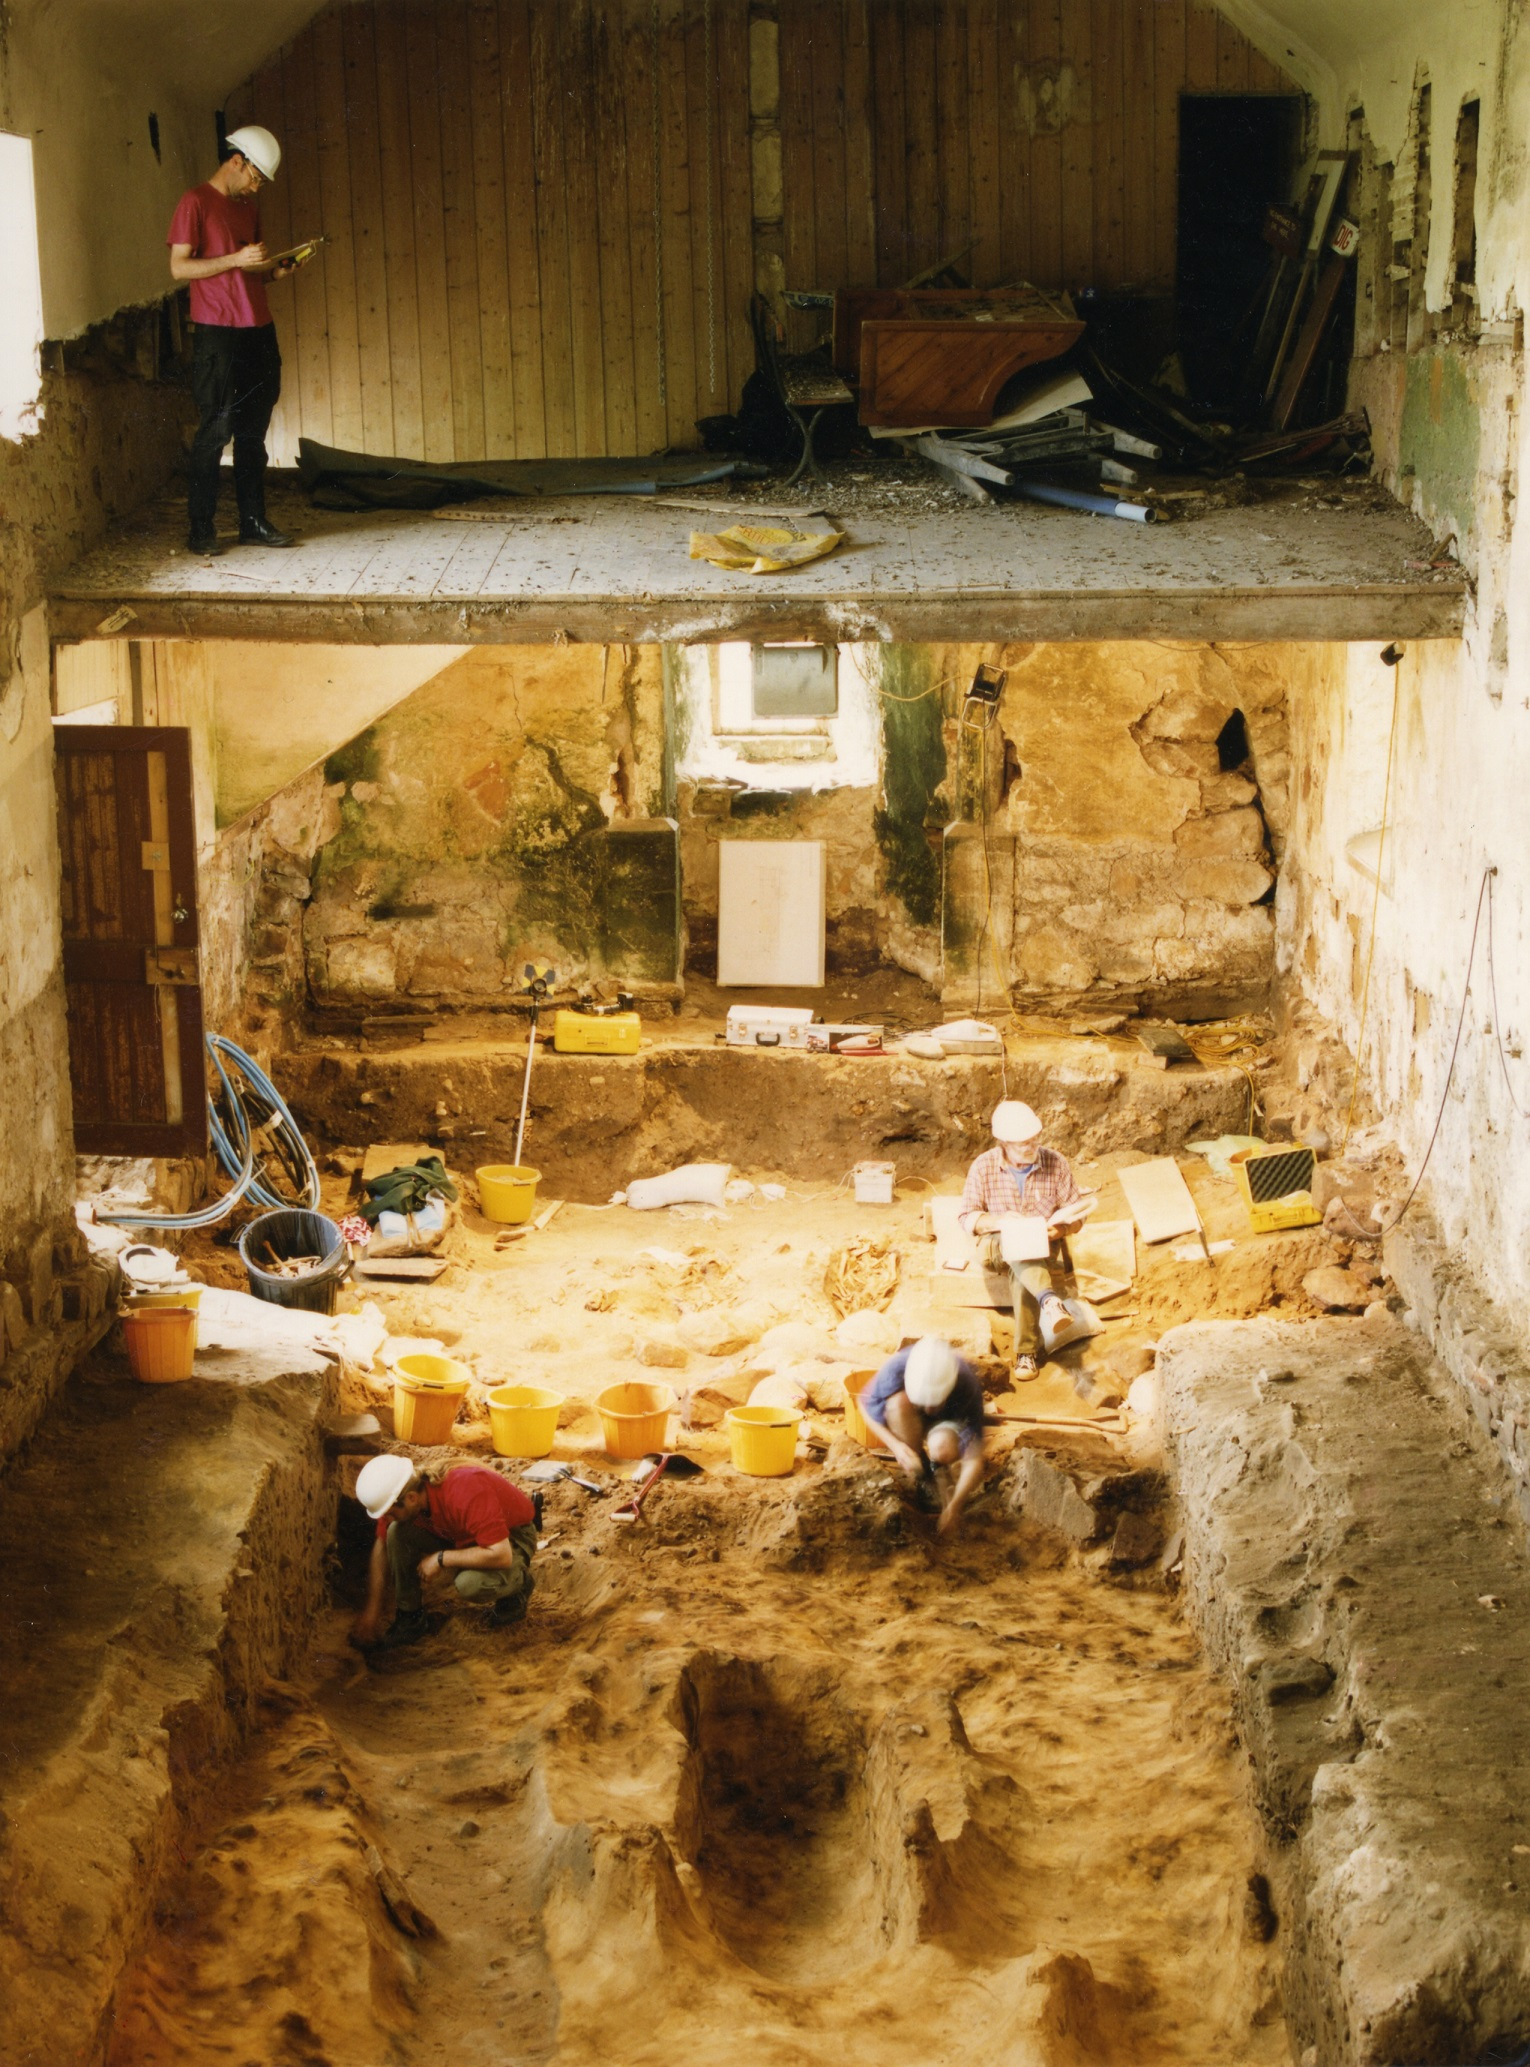 excavation-work-under-st-colmans-church-now-tarbat-discovery-centre-image-4-small